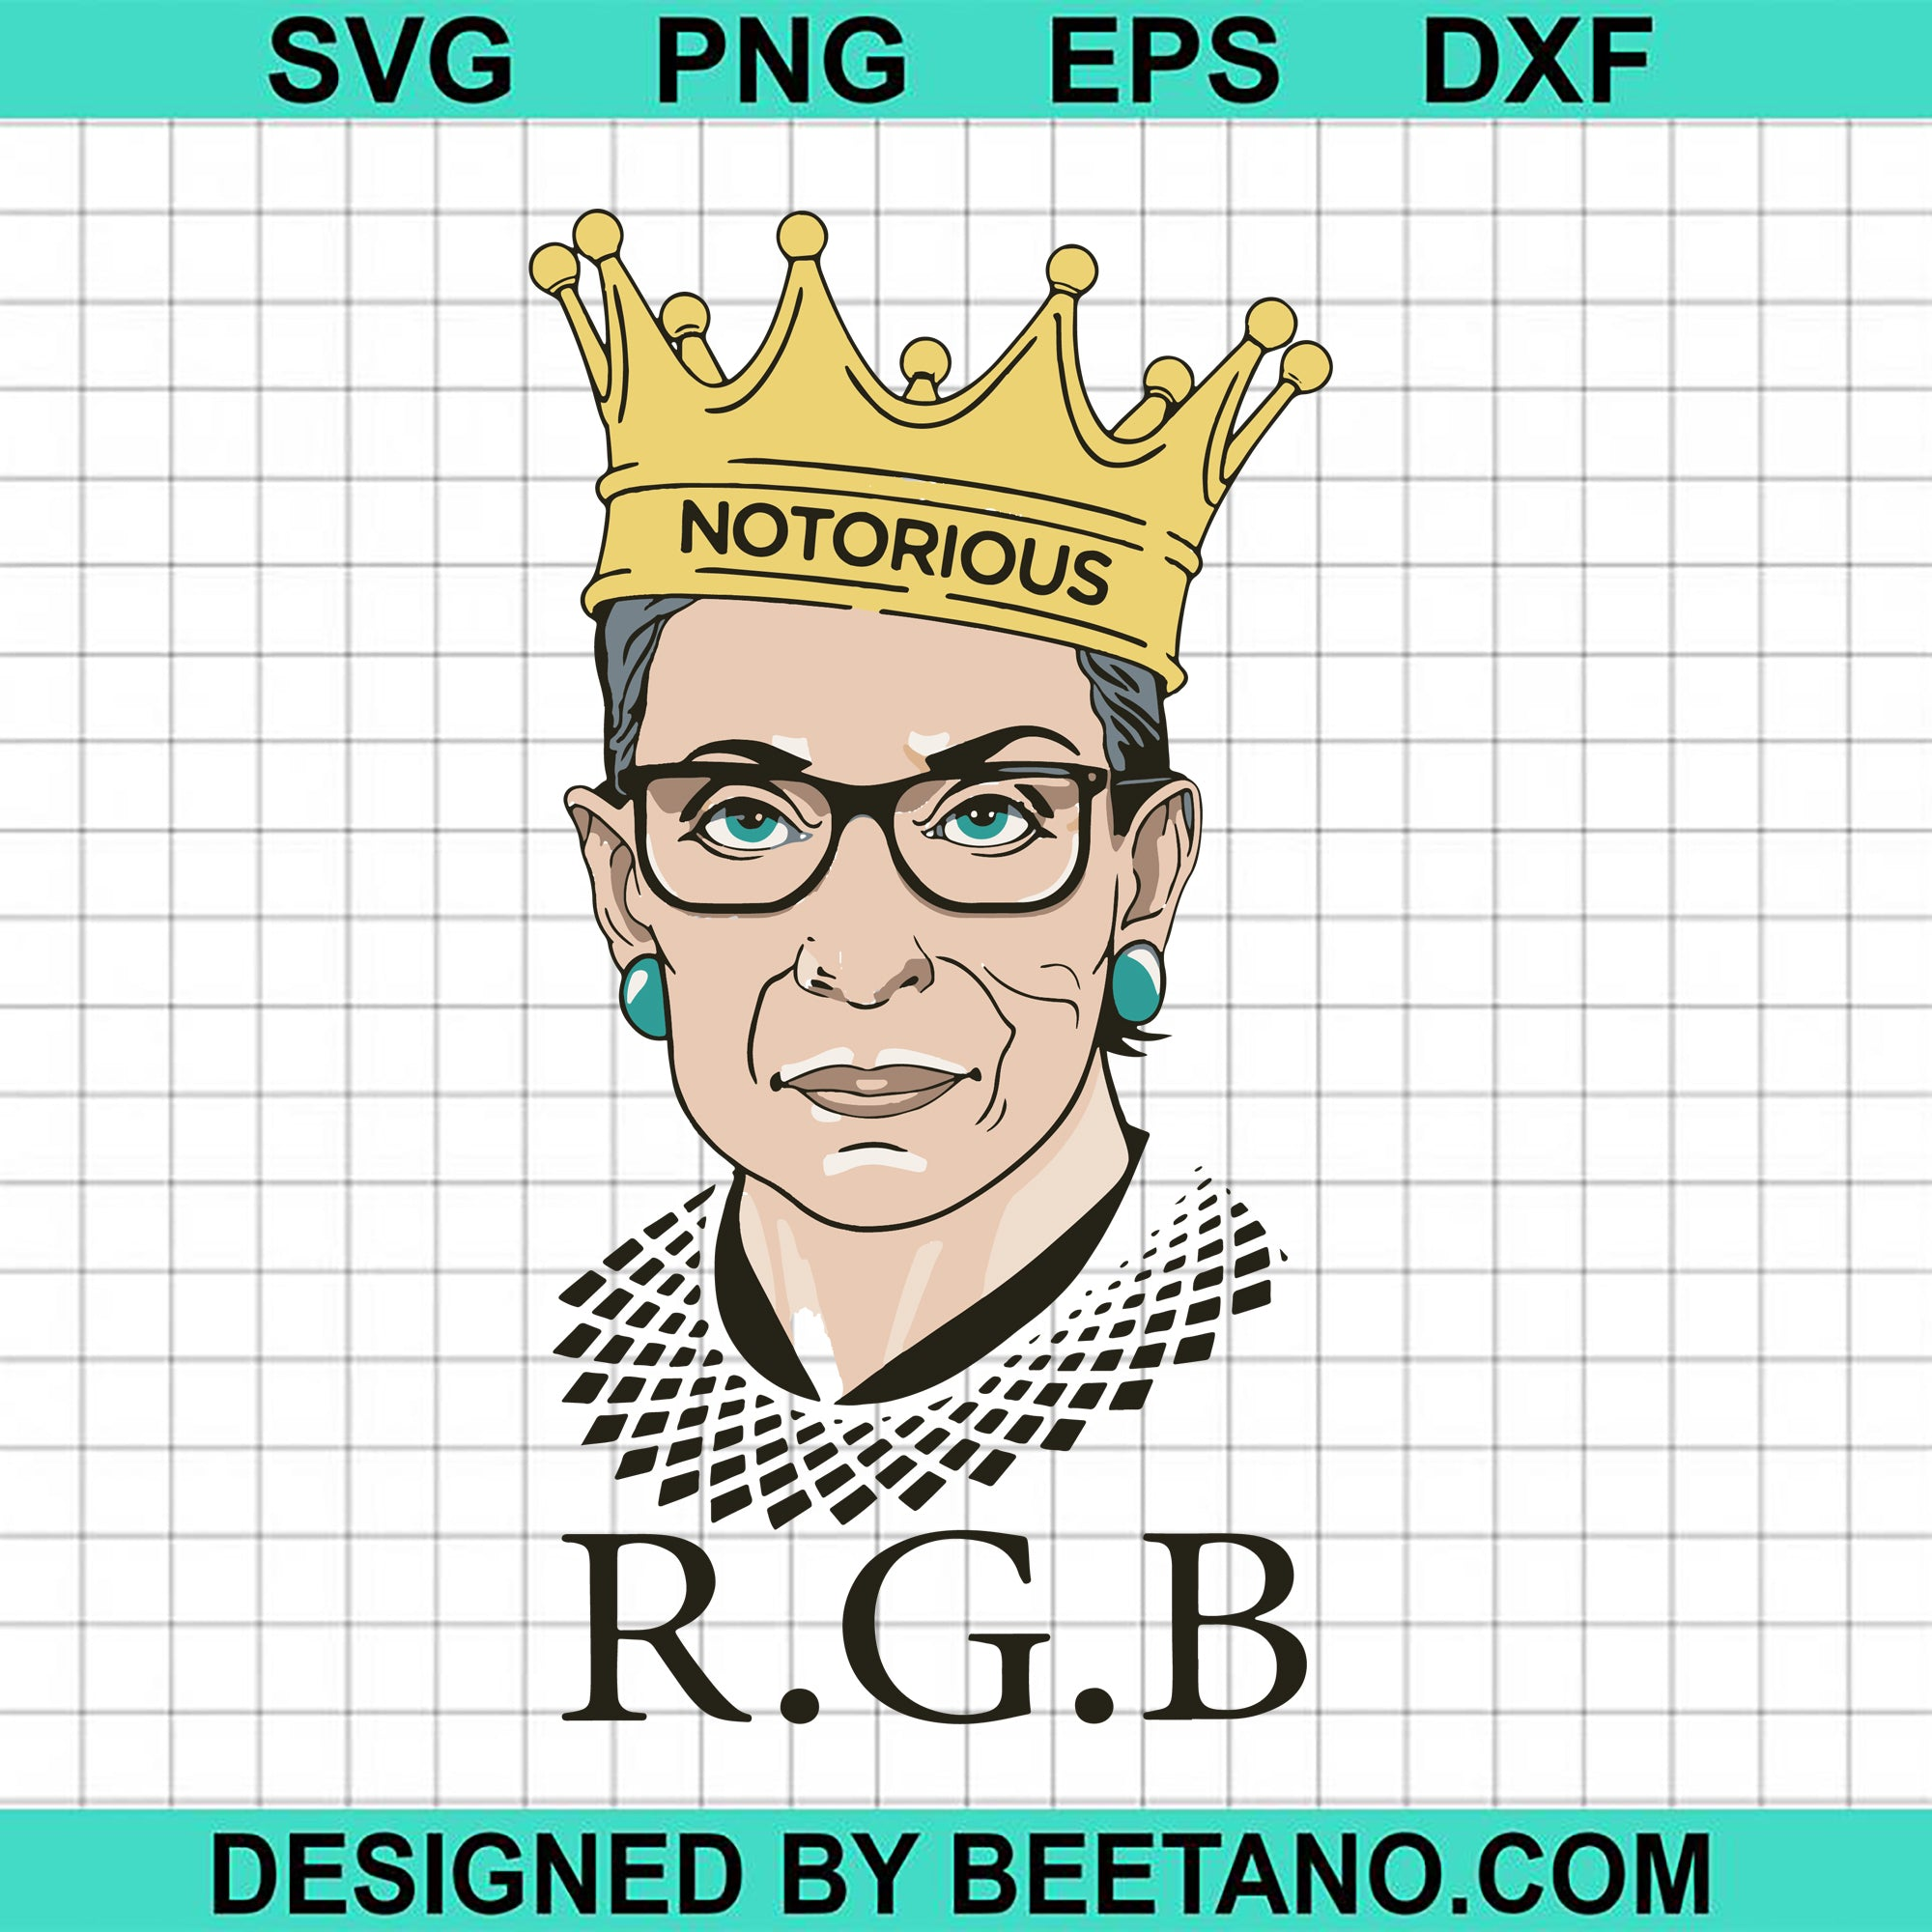 Notorious Rbg Ruth Bader Ginsburg Svg Cut File For Cricut Machine Make Beetanosvg Scalable Vector Graphics